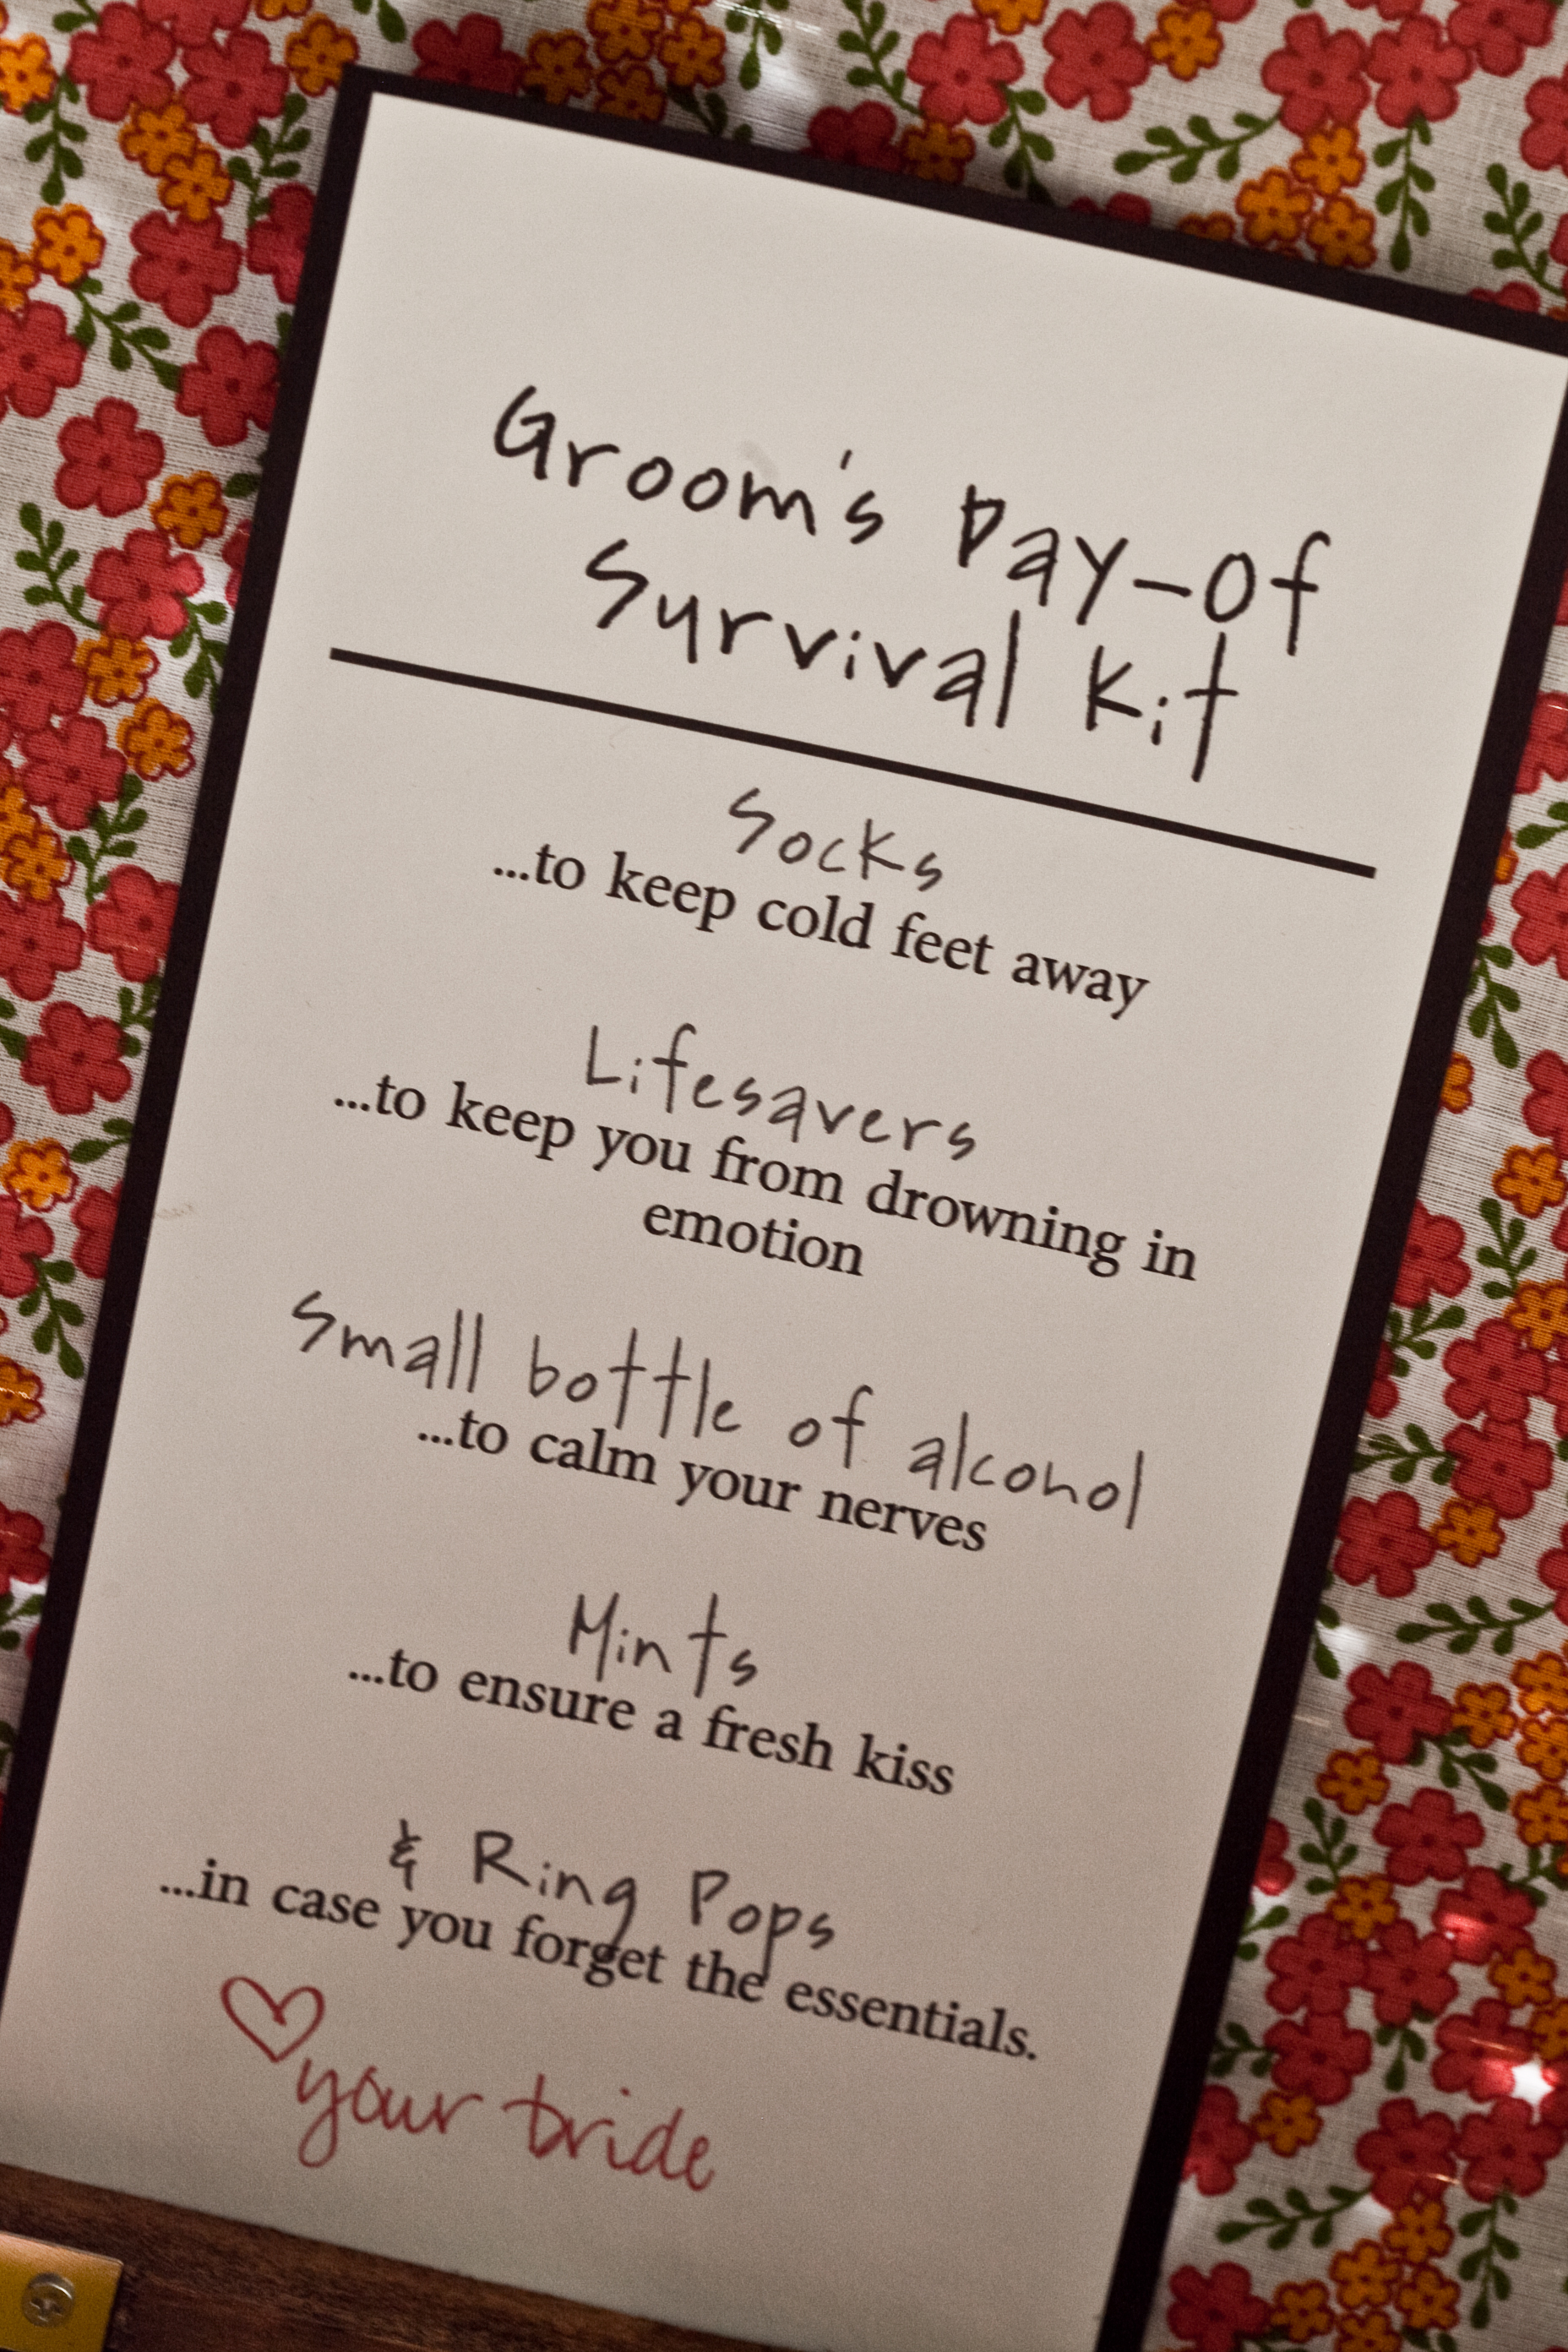 Gift For Bride From Groom Before Wedding : grooms survival kit! PinPoint